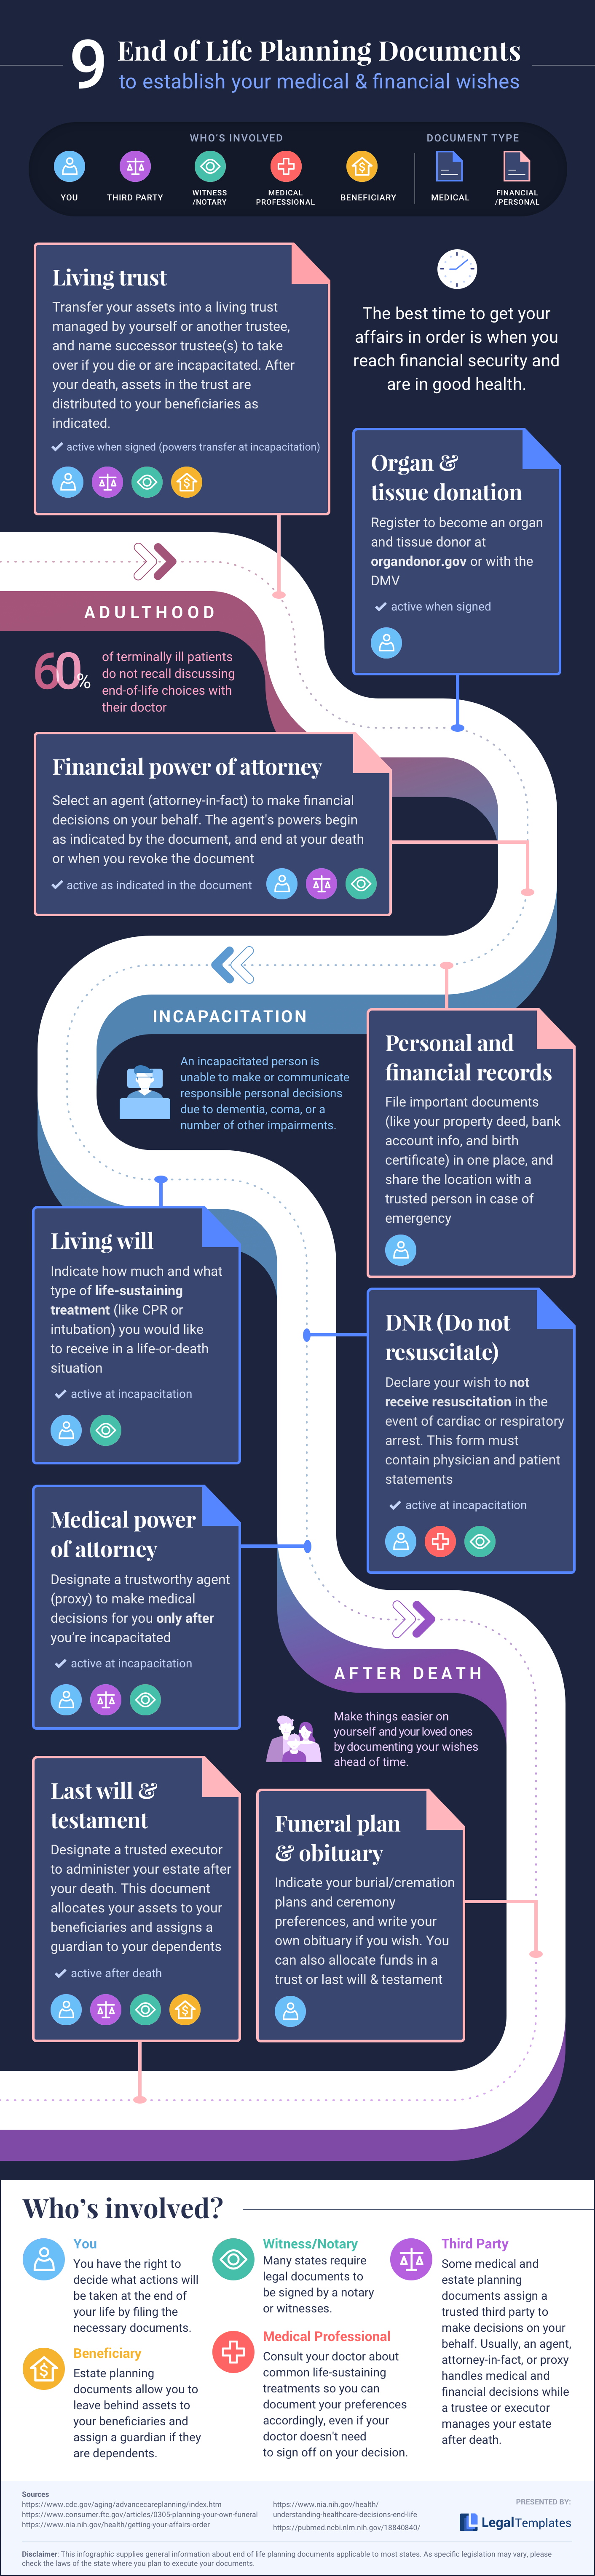 An infographic describing end of life planning documents